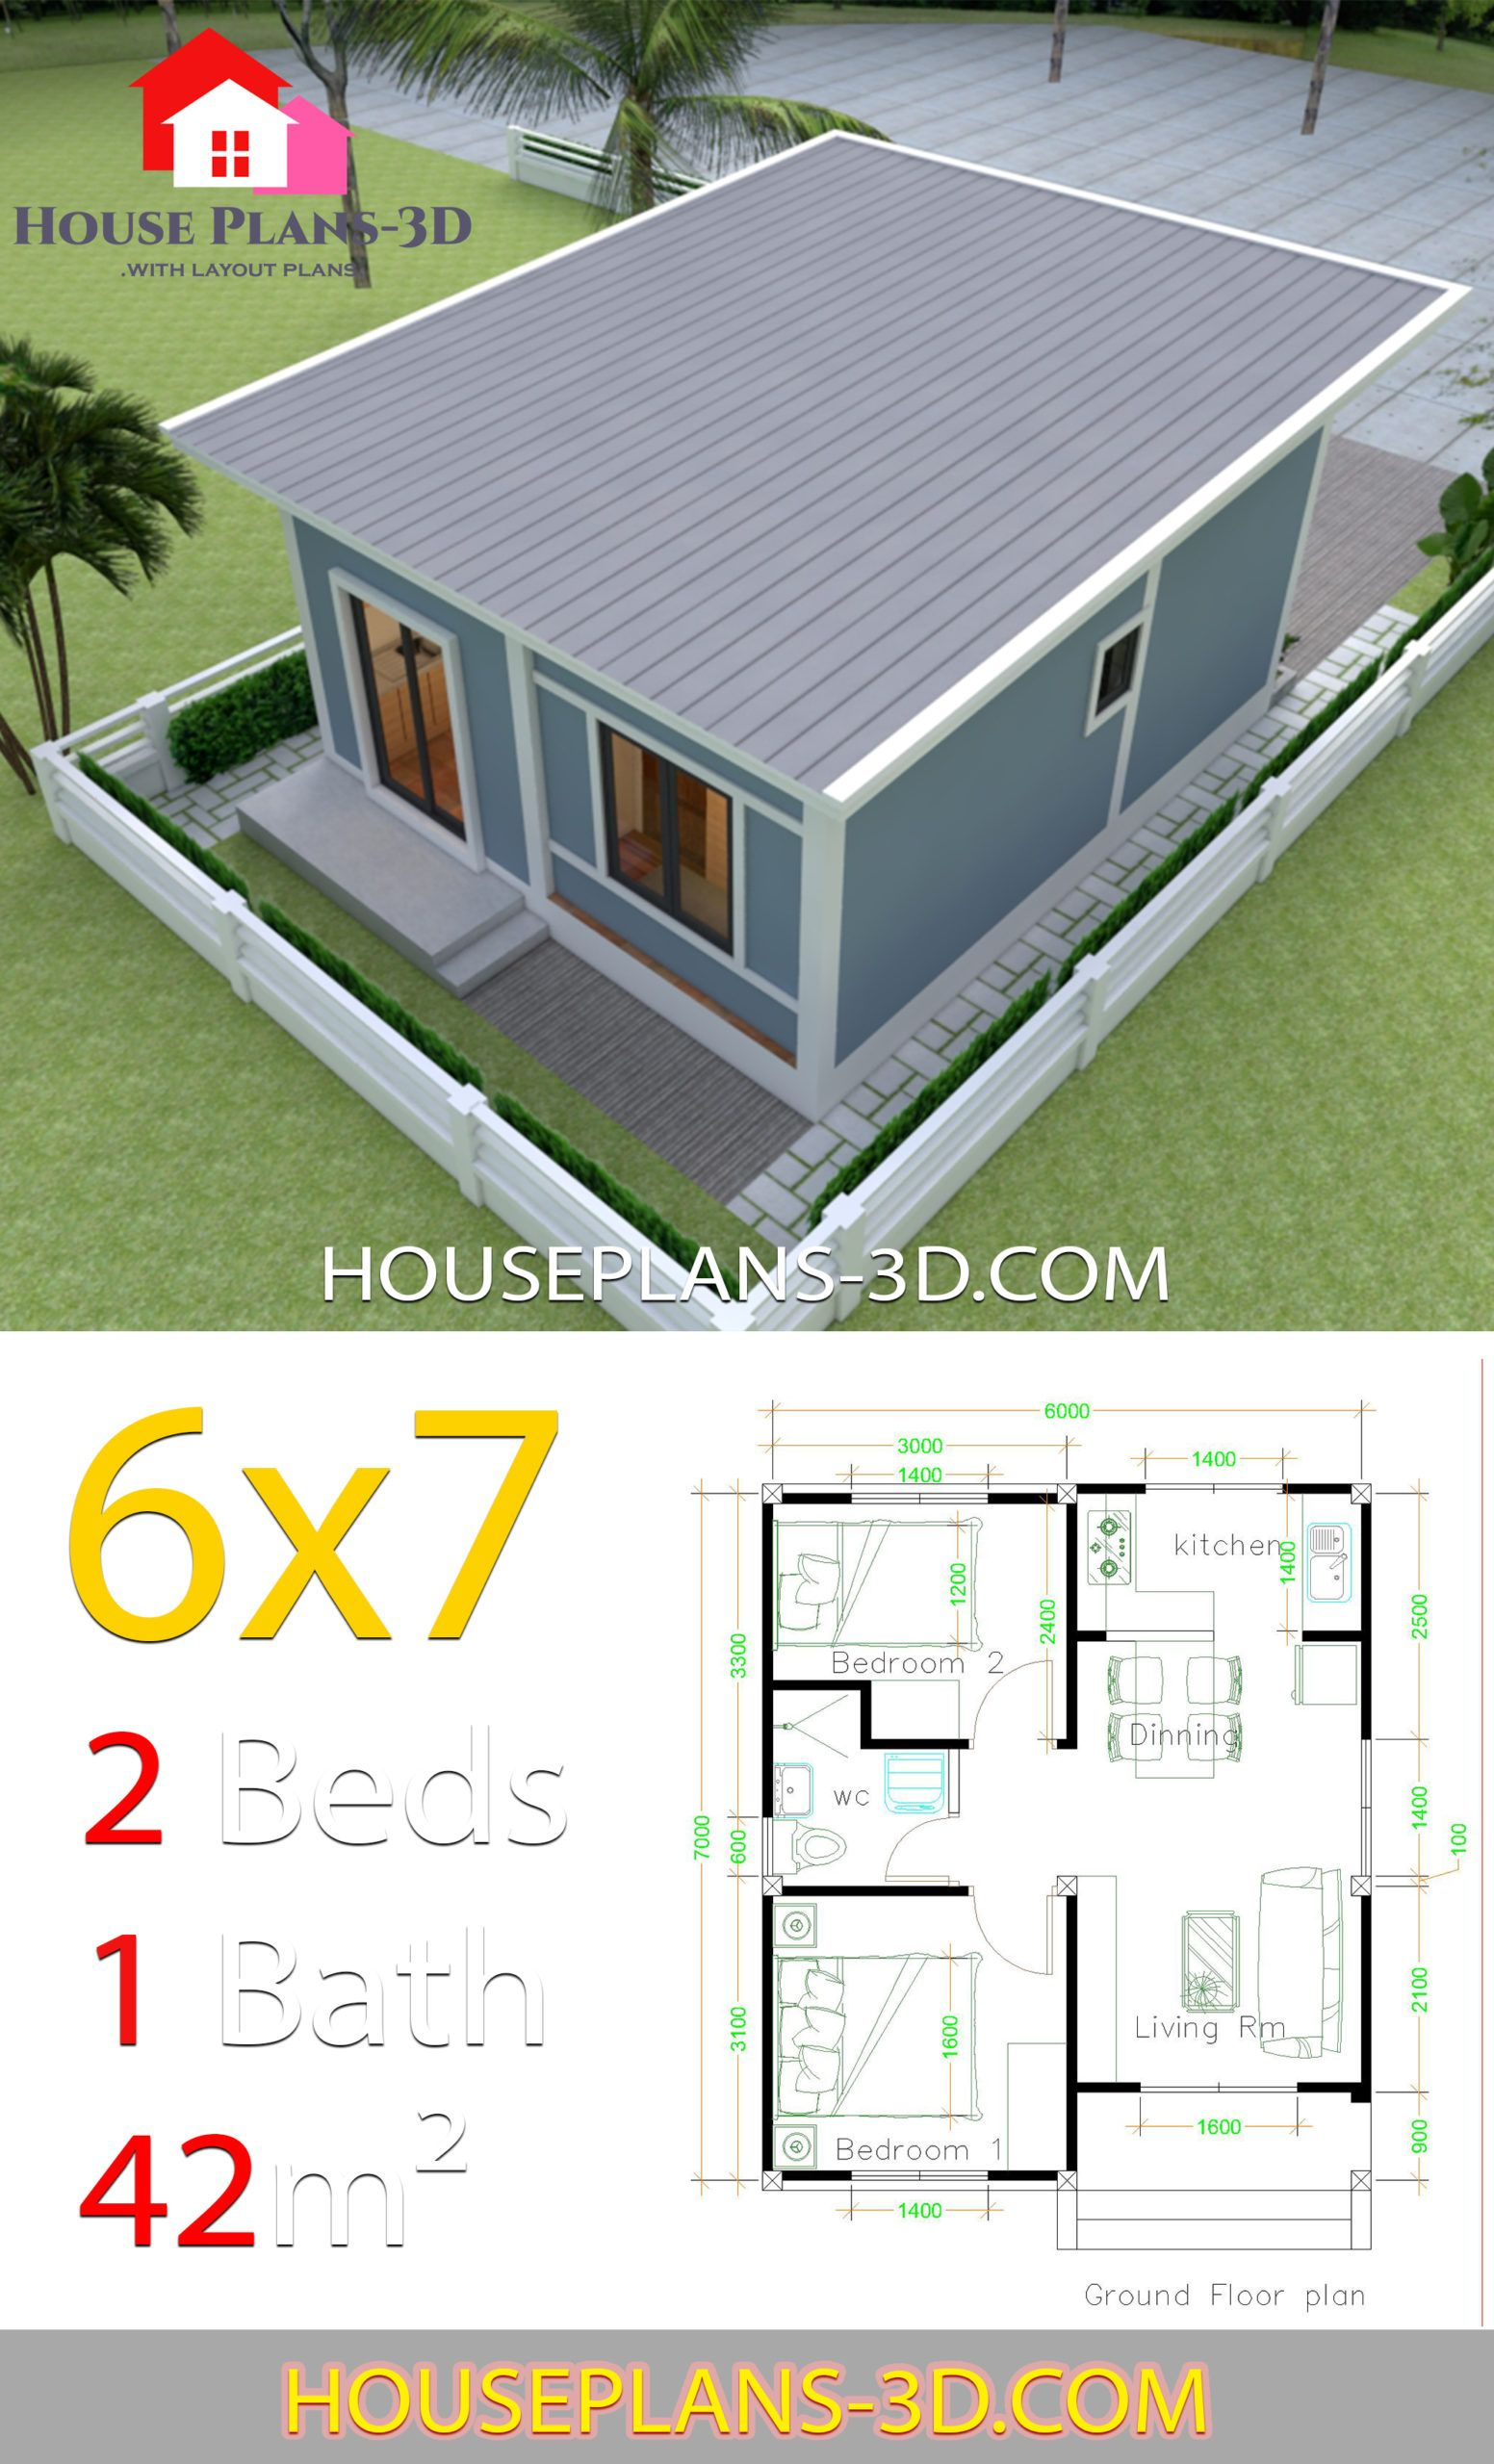 Simple House Plans 6x7 With 2 Bedrooms Shed Roof House Plans 3d House Plans Simple House Plans Simple House Design